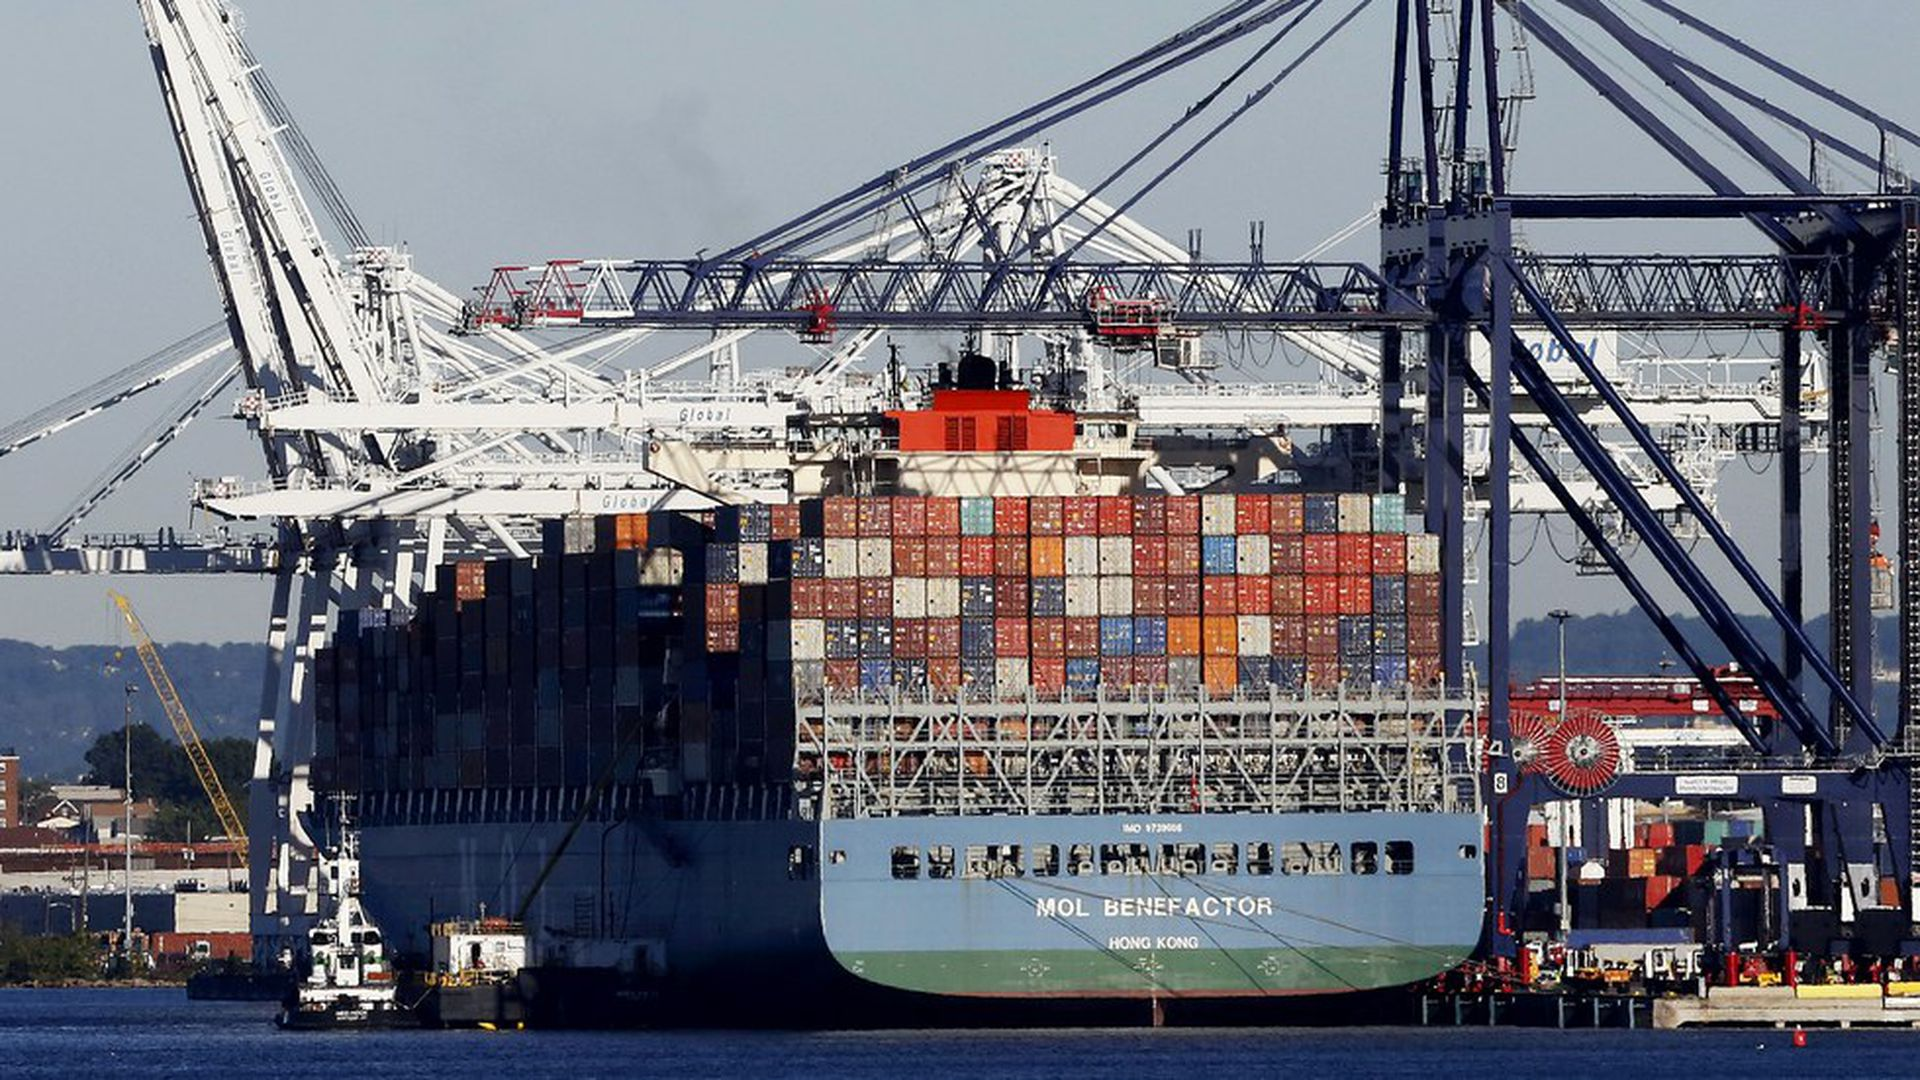 Self-driving container ships could upend shipping industry